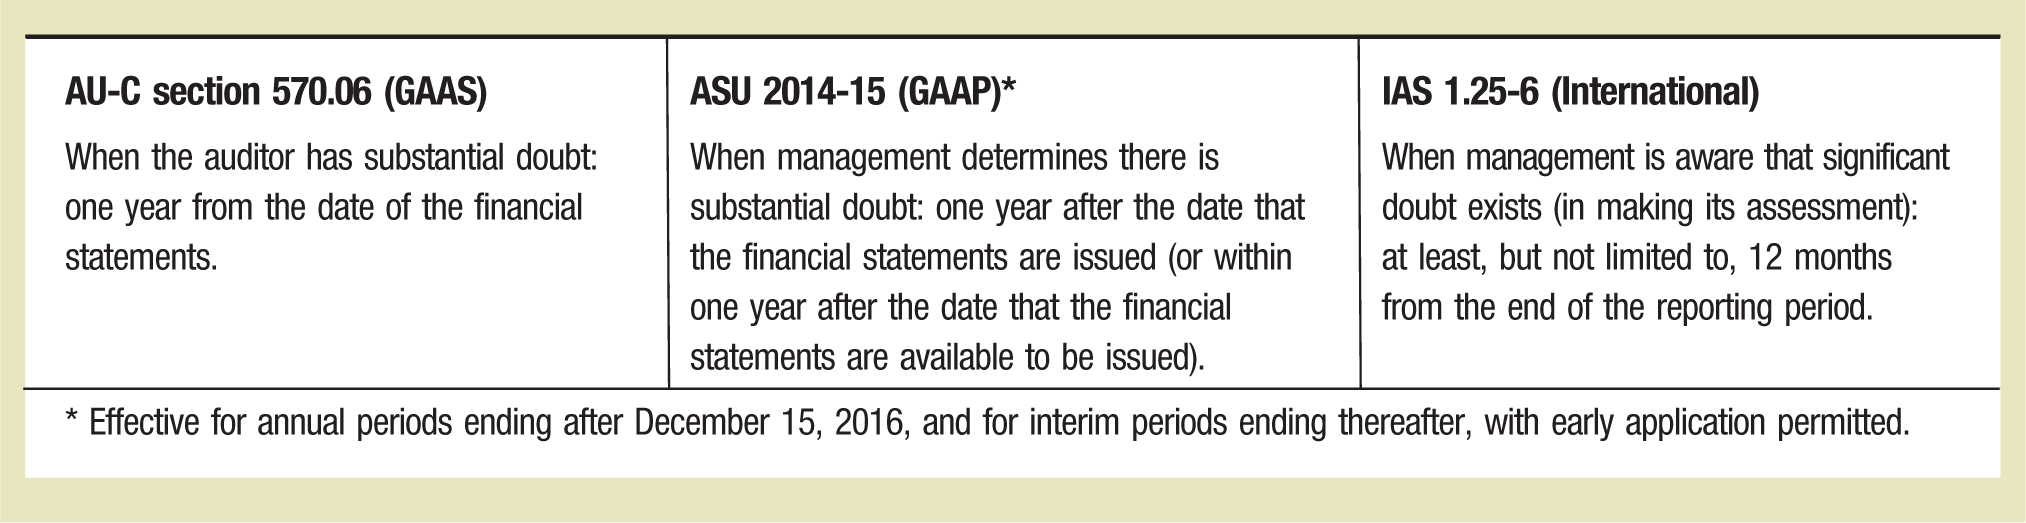 AU-C section 570.06 (GAAS) ASU 2014-15 (GAAP)* IAS 1.25-6 (International) When the auditor has substantial doubt: one year from the date of the financial statements When management determines there is substantial doubt: one year after the date that the financial statements are issued (or within one year after the date that the financial statements are available to be issued). When management is aware that significant doubt exists (in making its assessment): at least, but not limited to, 12 months from the end of the reporting period. * Effective for annual periods ending after December 15, 2016, and for interim periods ending thereafter, with early application permitted.